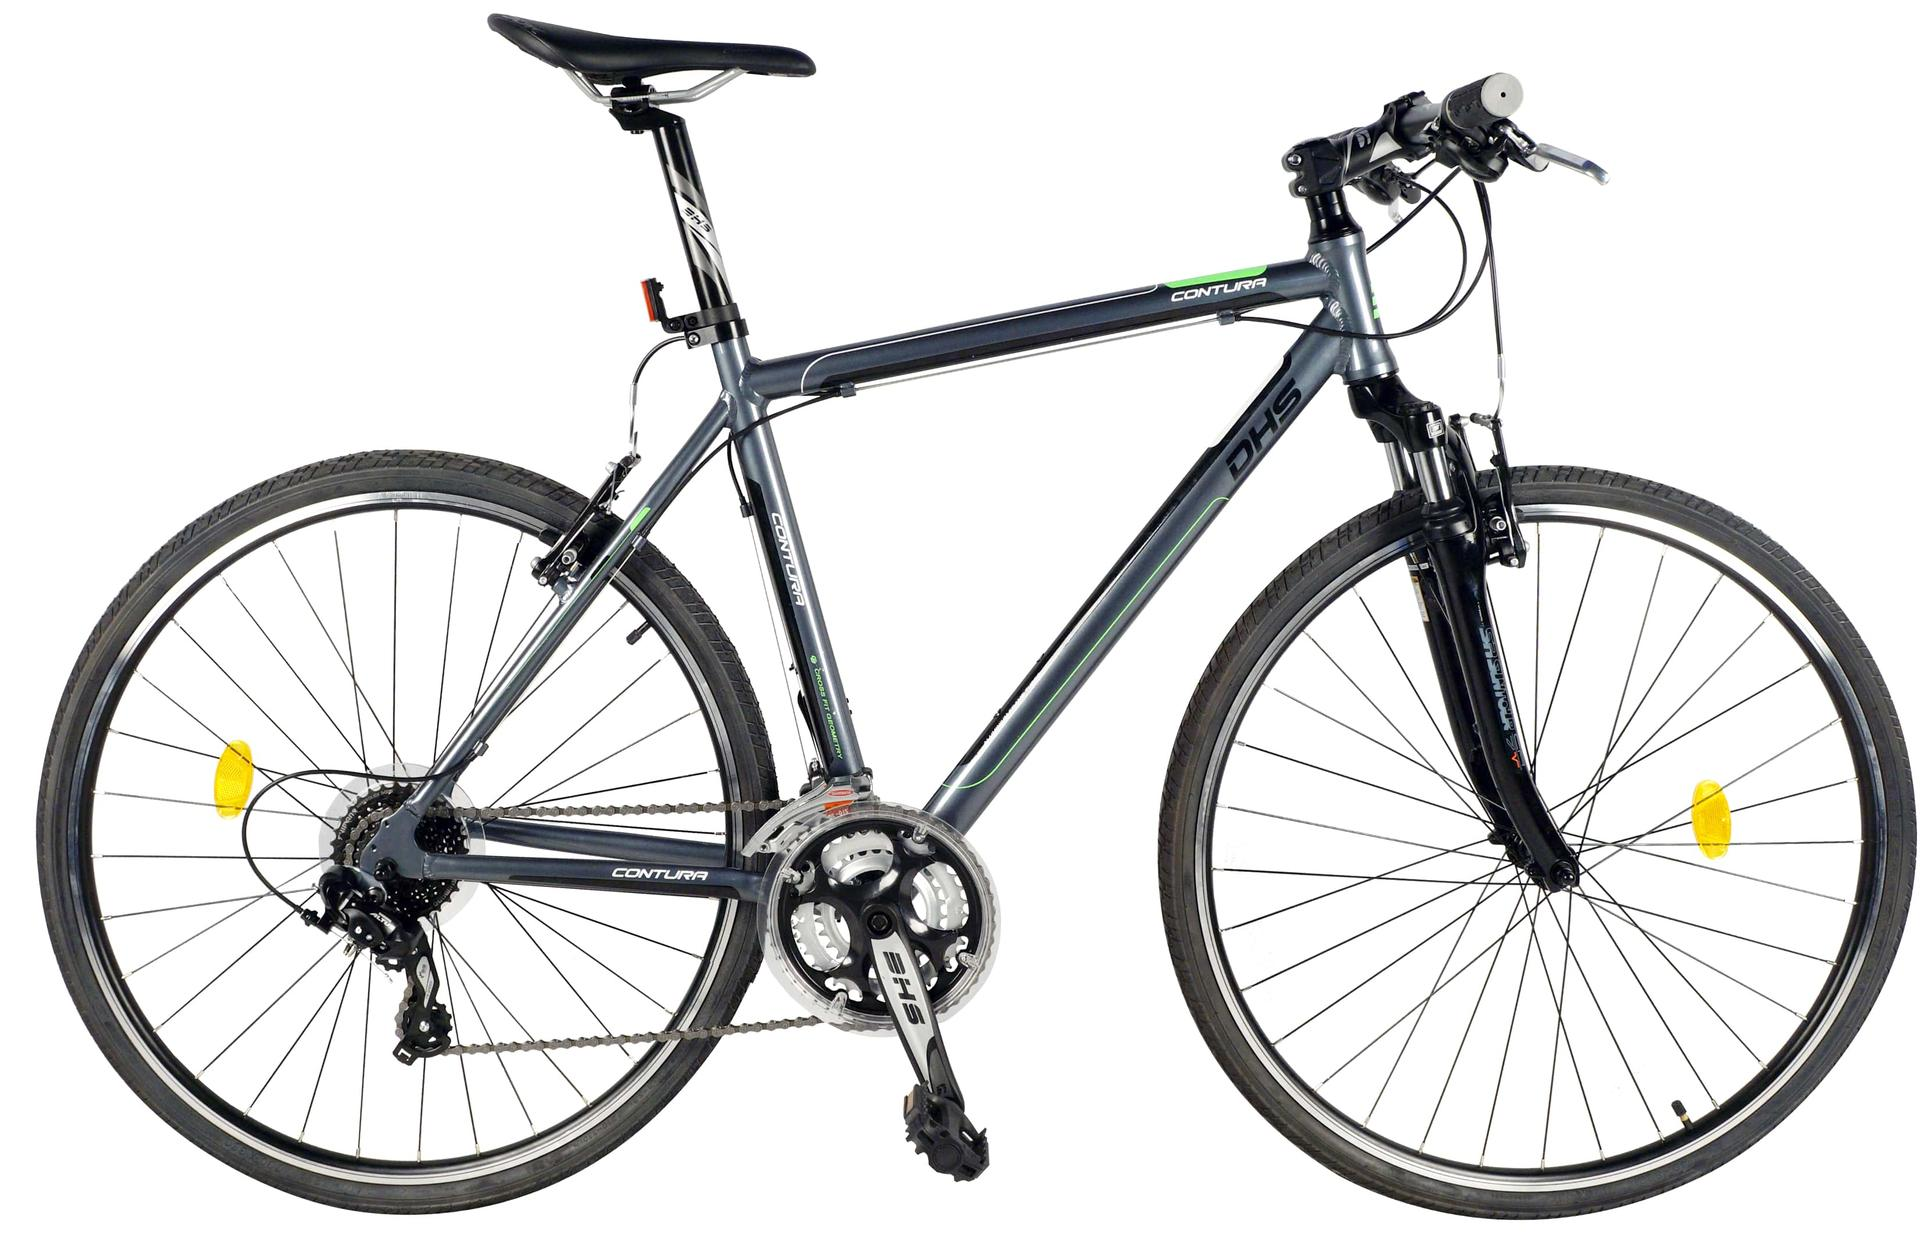 Bicicletta uomo da cross contura DHS 2865 Grey-Green 480 mm